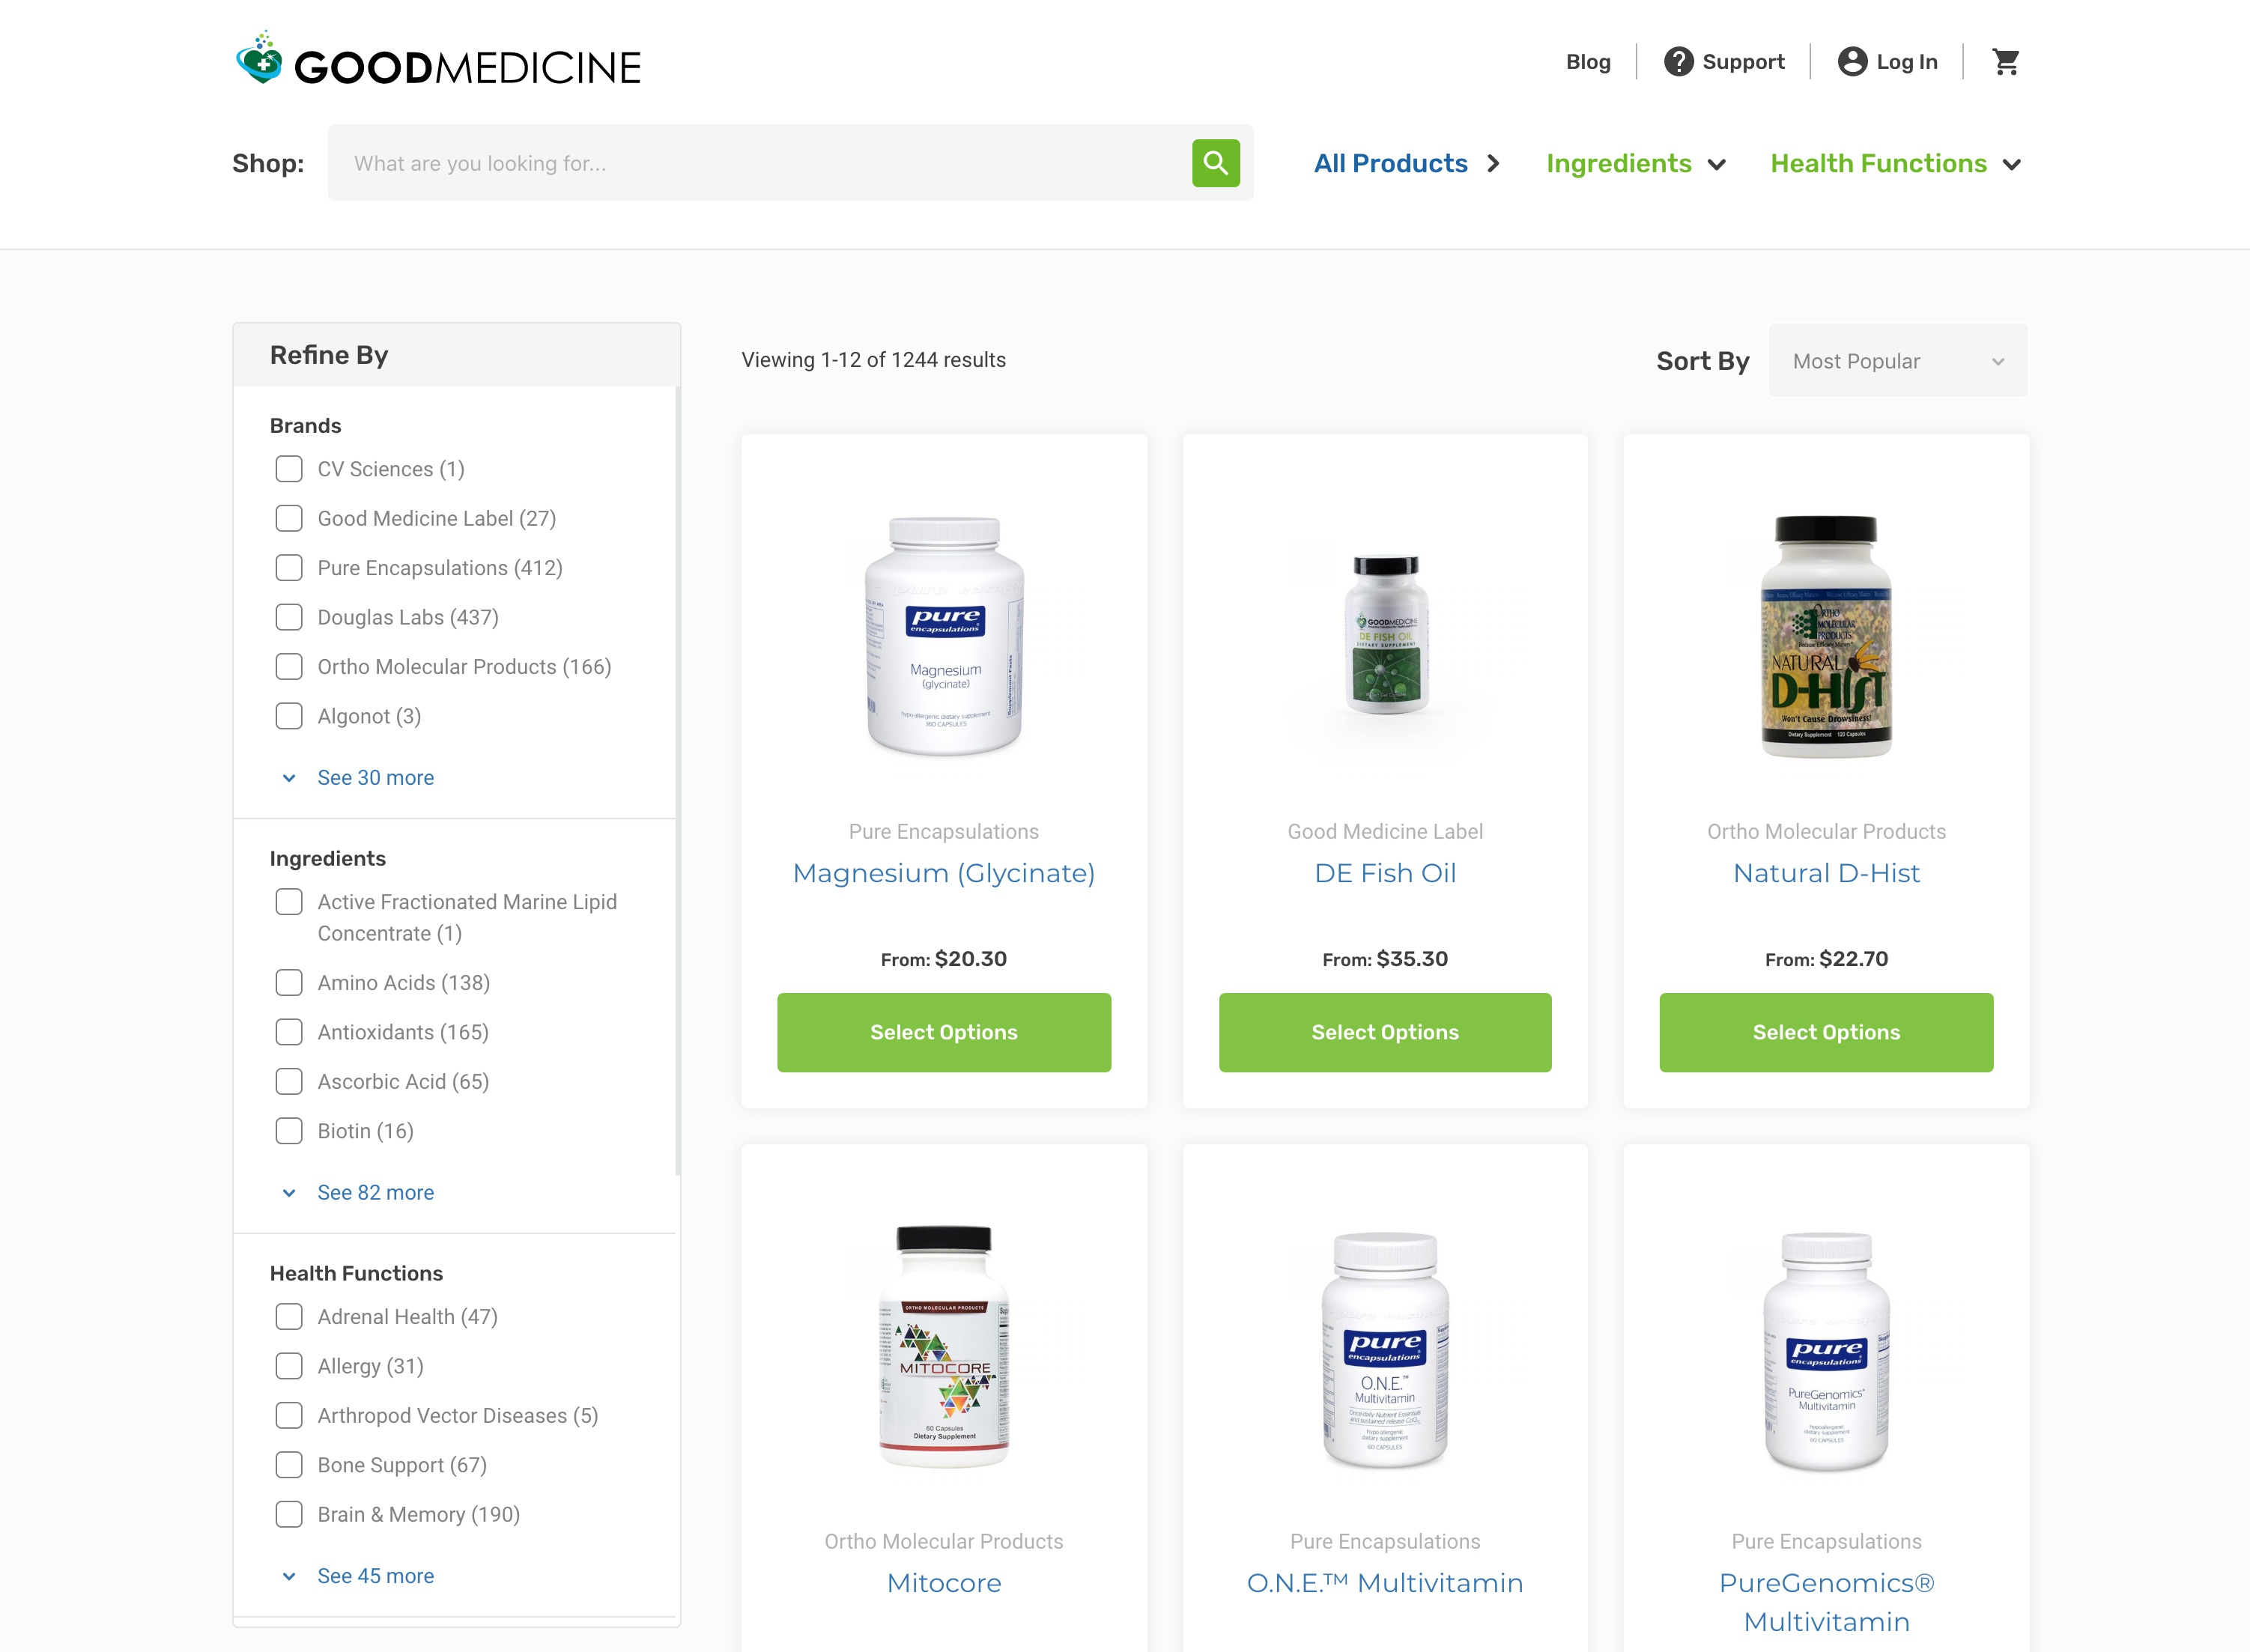 A screenshot of the products landing page